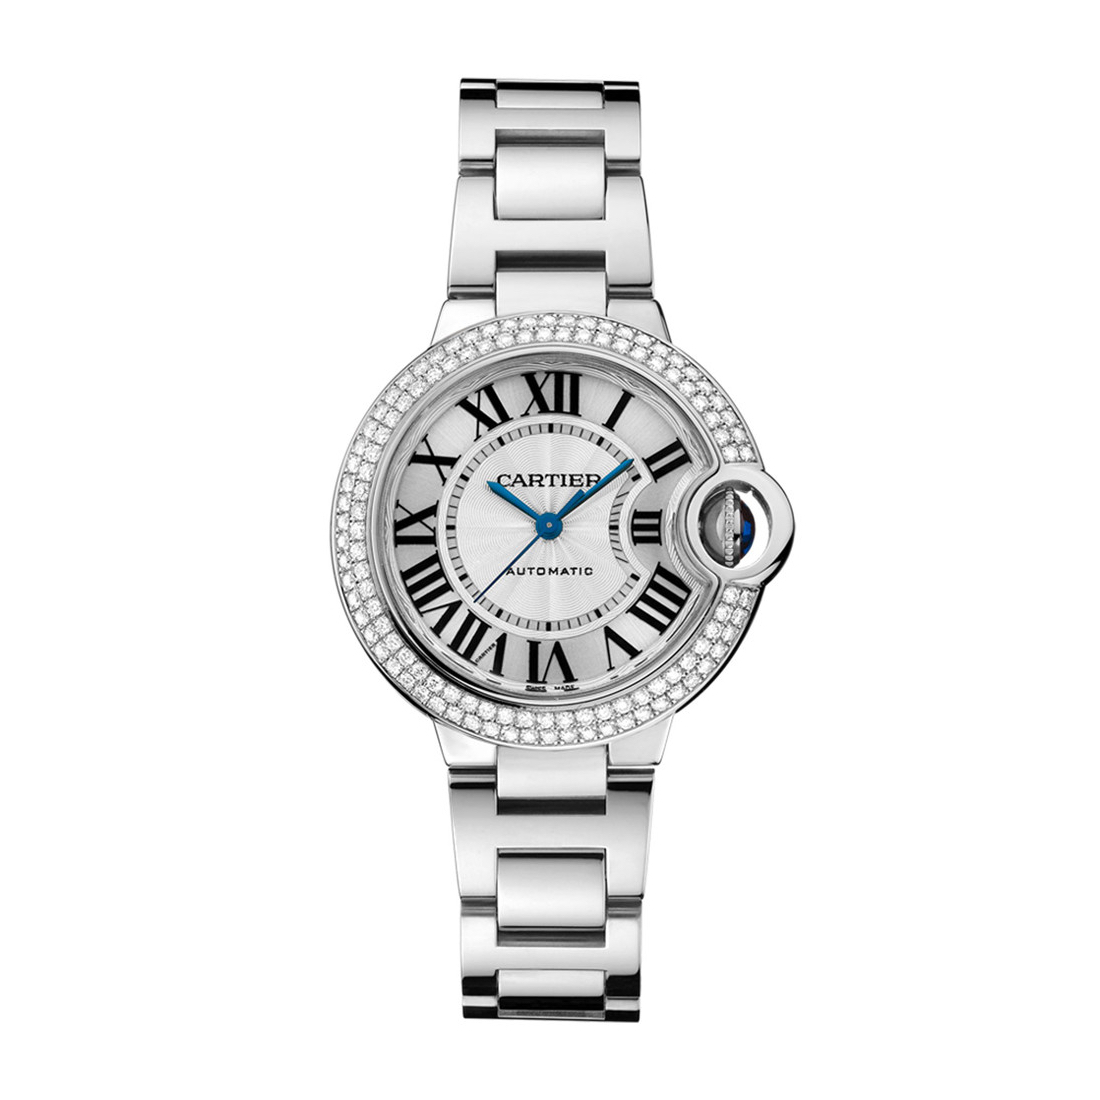 Ballon Bleu de Cartier in White Gold with Diamonds – 33mm – Ladies Watch –  WE902065 c4dcf4051a20